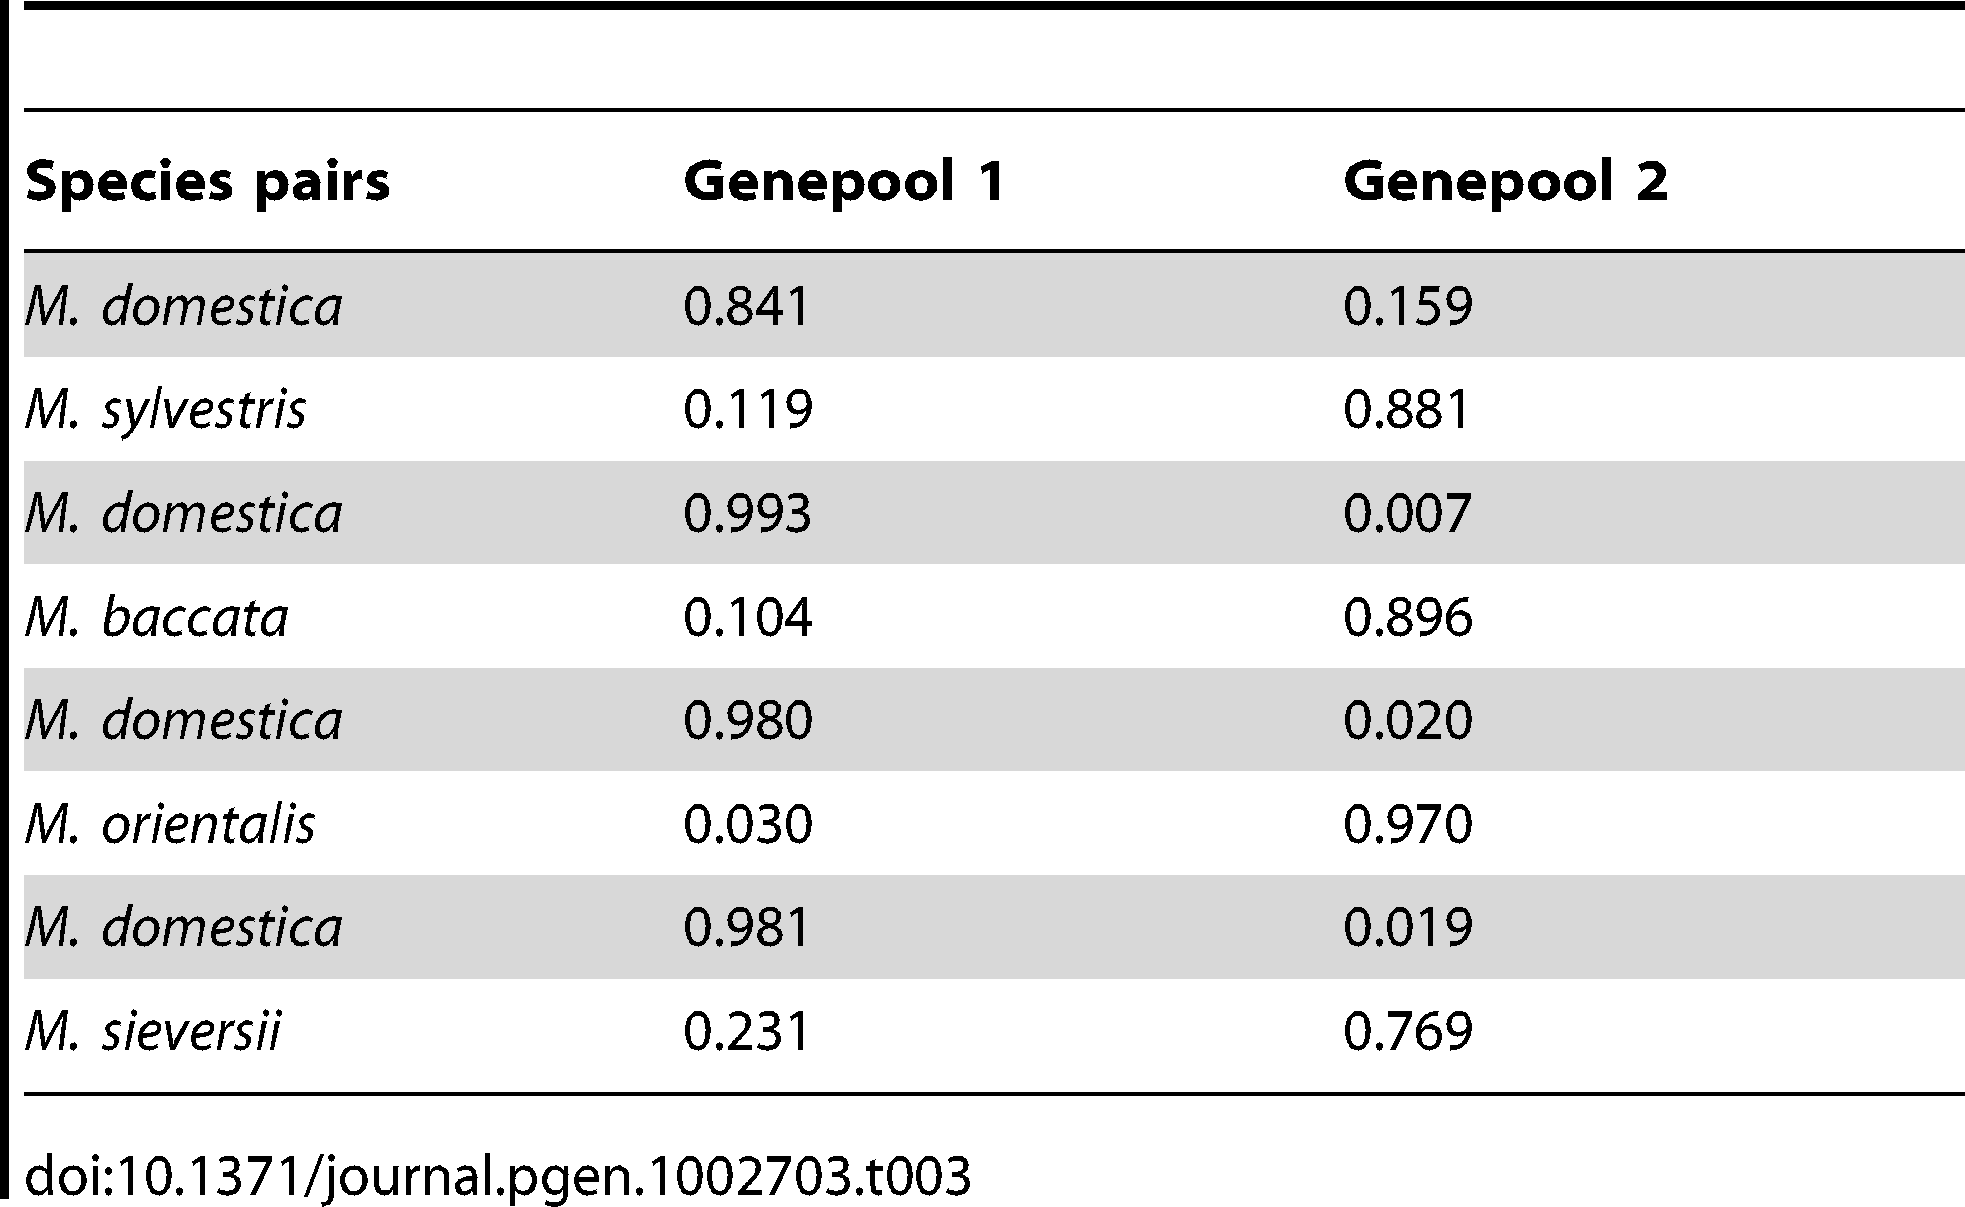 Mean proportions of assignment to each of the two species in species pair comparisons (K=2) including <i>M. domestica</i> (Genepool 1) and each of the four wild <i>Malus</i> species (Genepool 2).